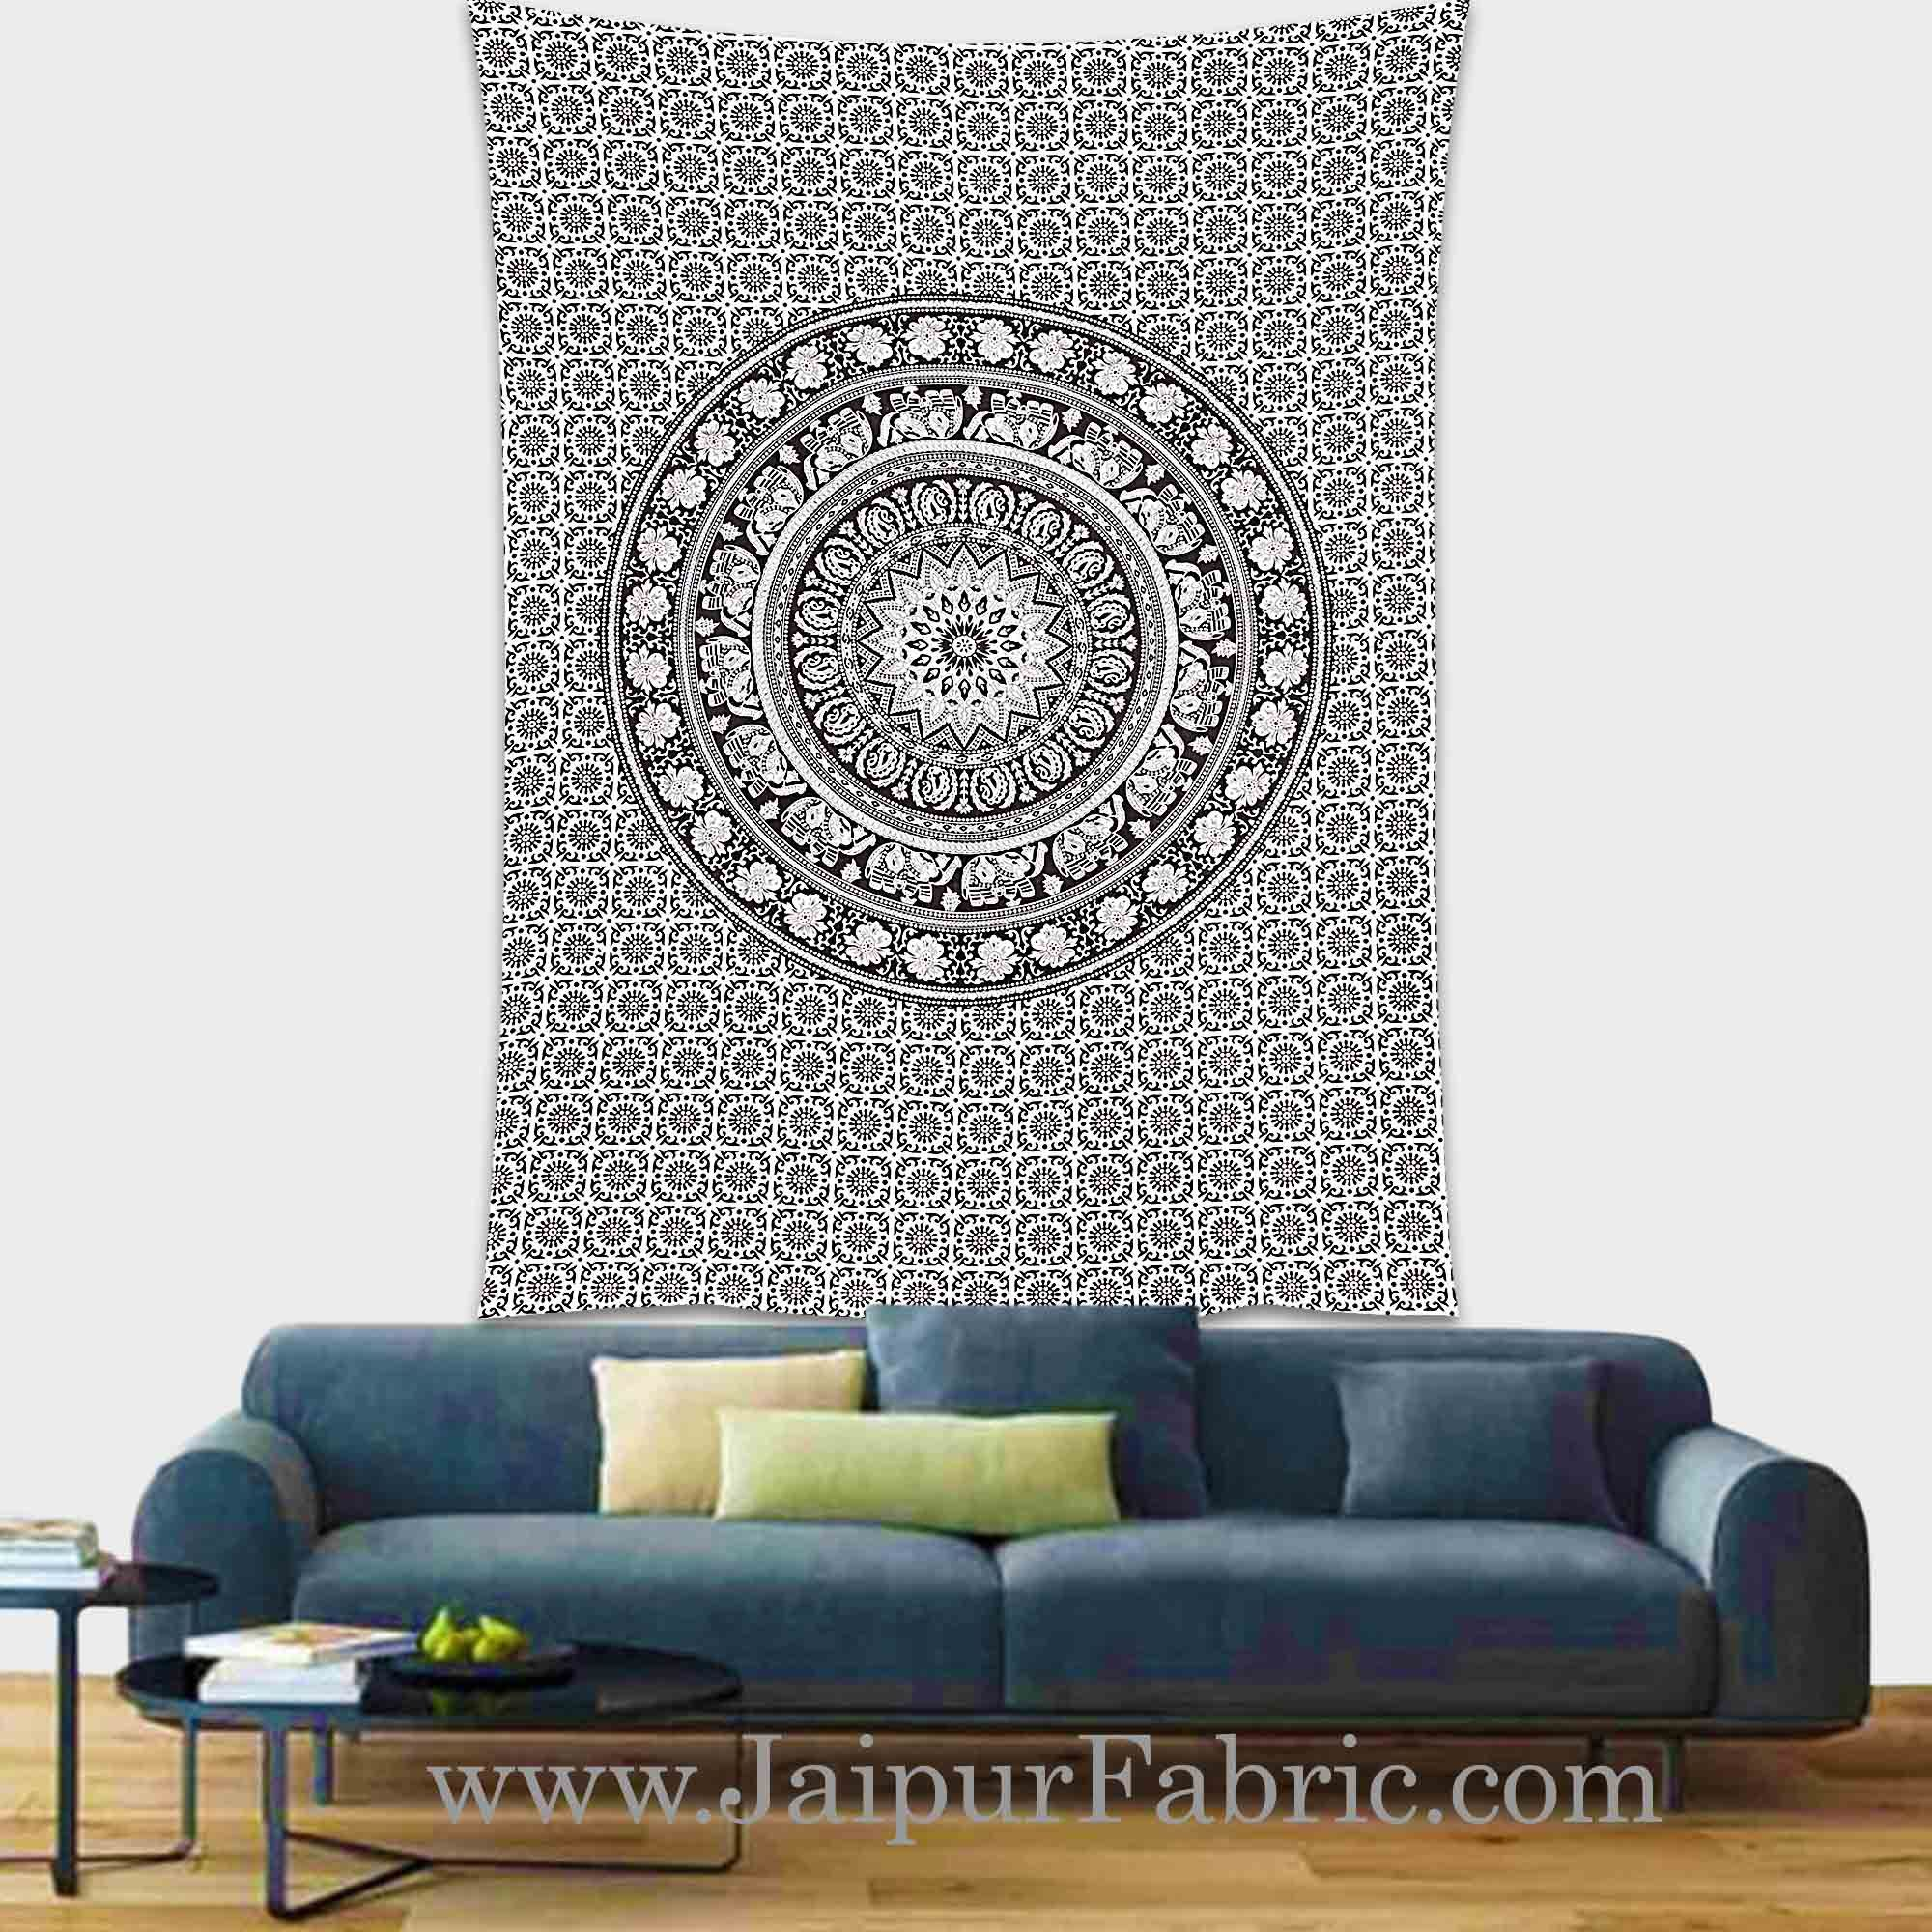 Black and White Tapestry with concentric circle mandala design wall hanging and beach throw 90x60